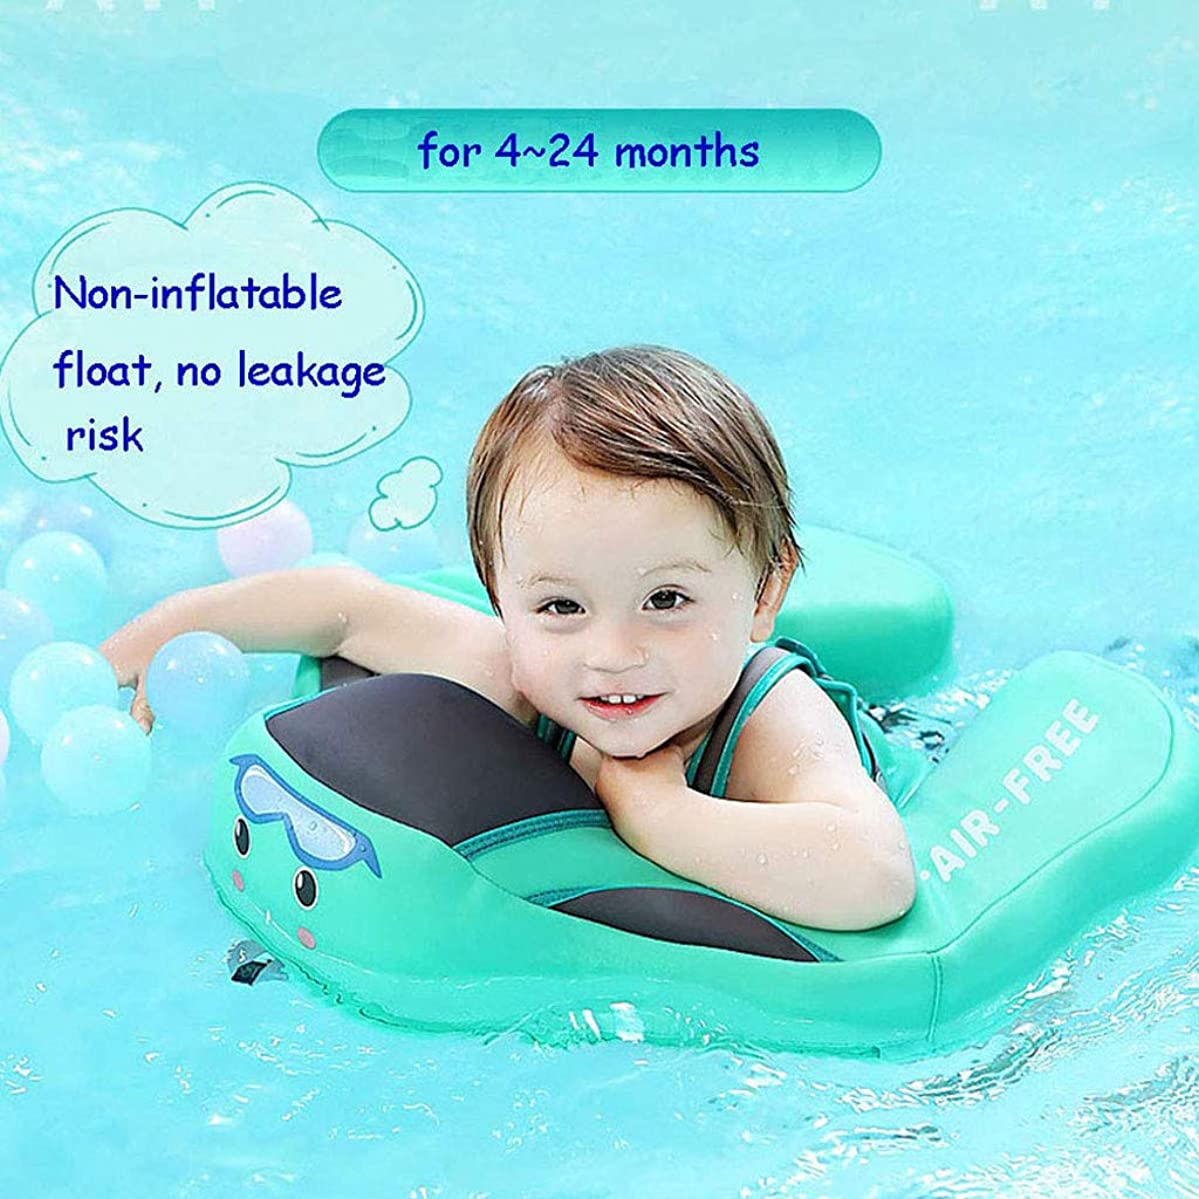 Inflatable Baby Swimming Float Ring - Baby Children Infant Toddler Free Lying Swimming Waist Float Ring Pool Toys Swim Trainer Flotation Device for 4-24 Months (46.5x48.5cm, Green)